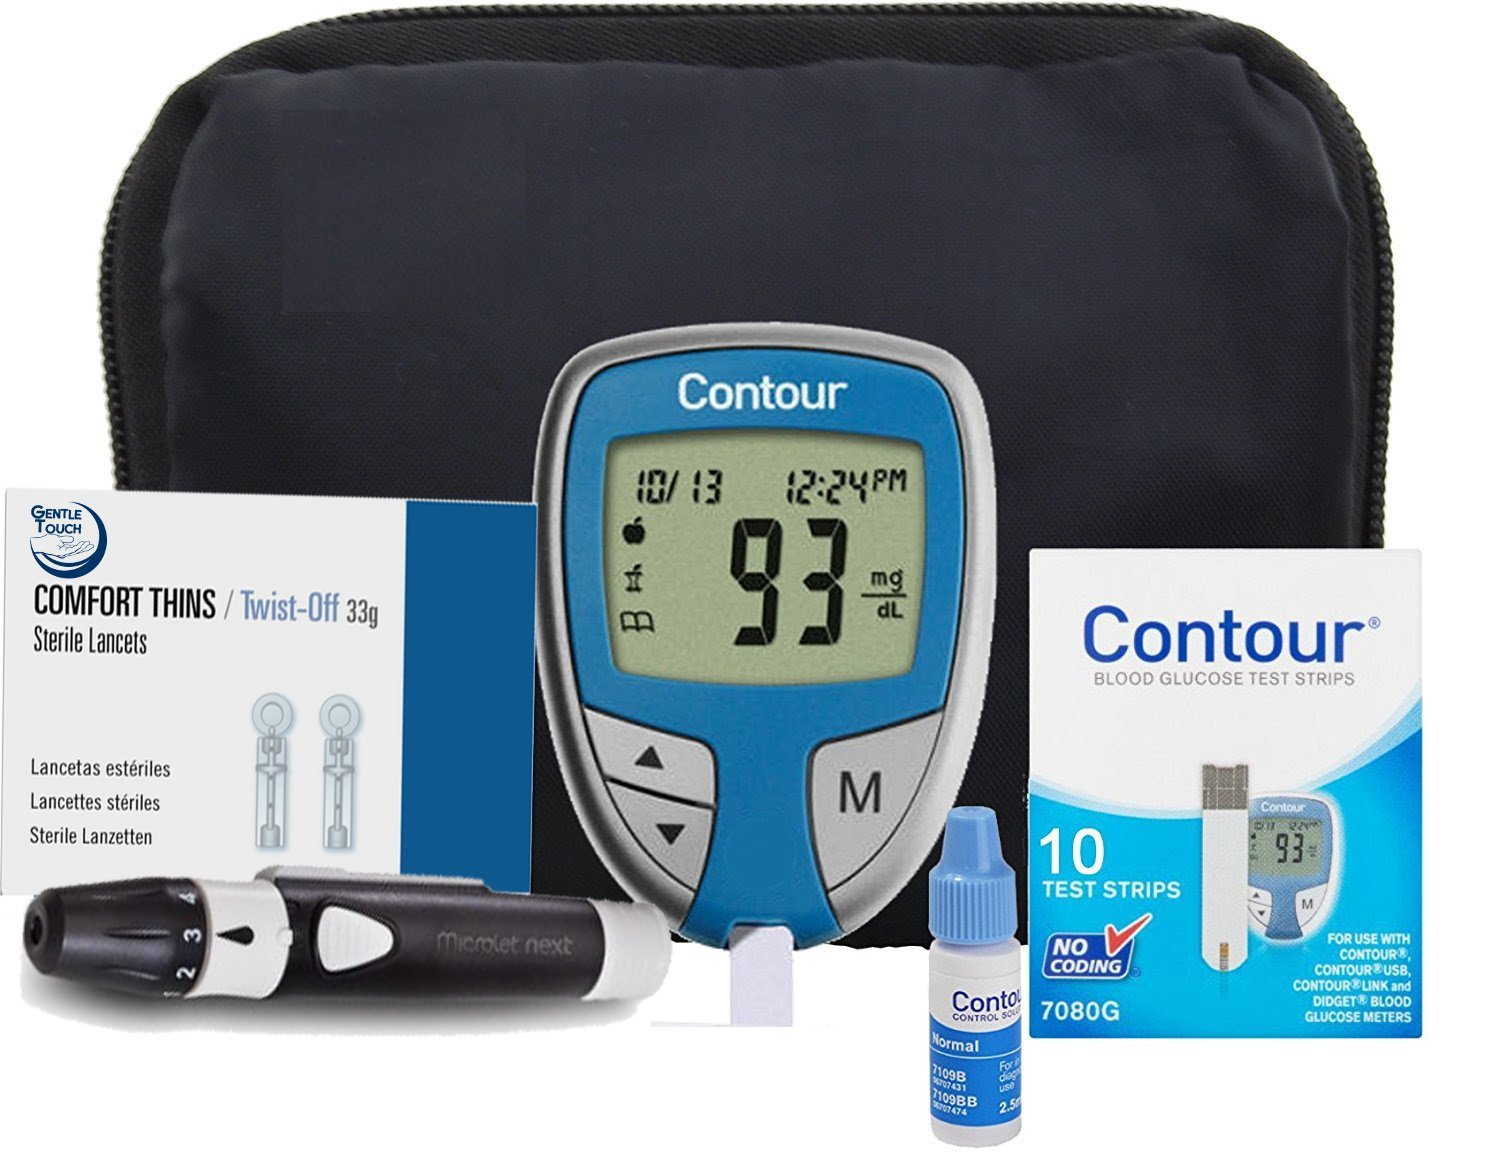 Bayer Contour Complete Diabetic Blood Glucose Testing Kit, Meter, 10 Test Strips, 10 Lancets, Adjustable Lancing Device, Control Solution, Owners Log Book & Manual